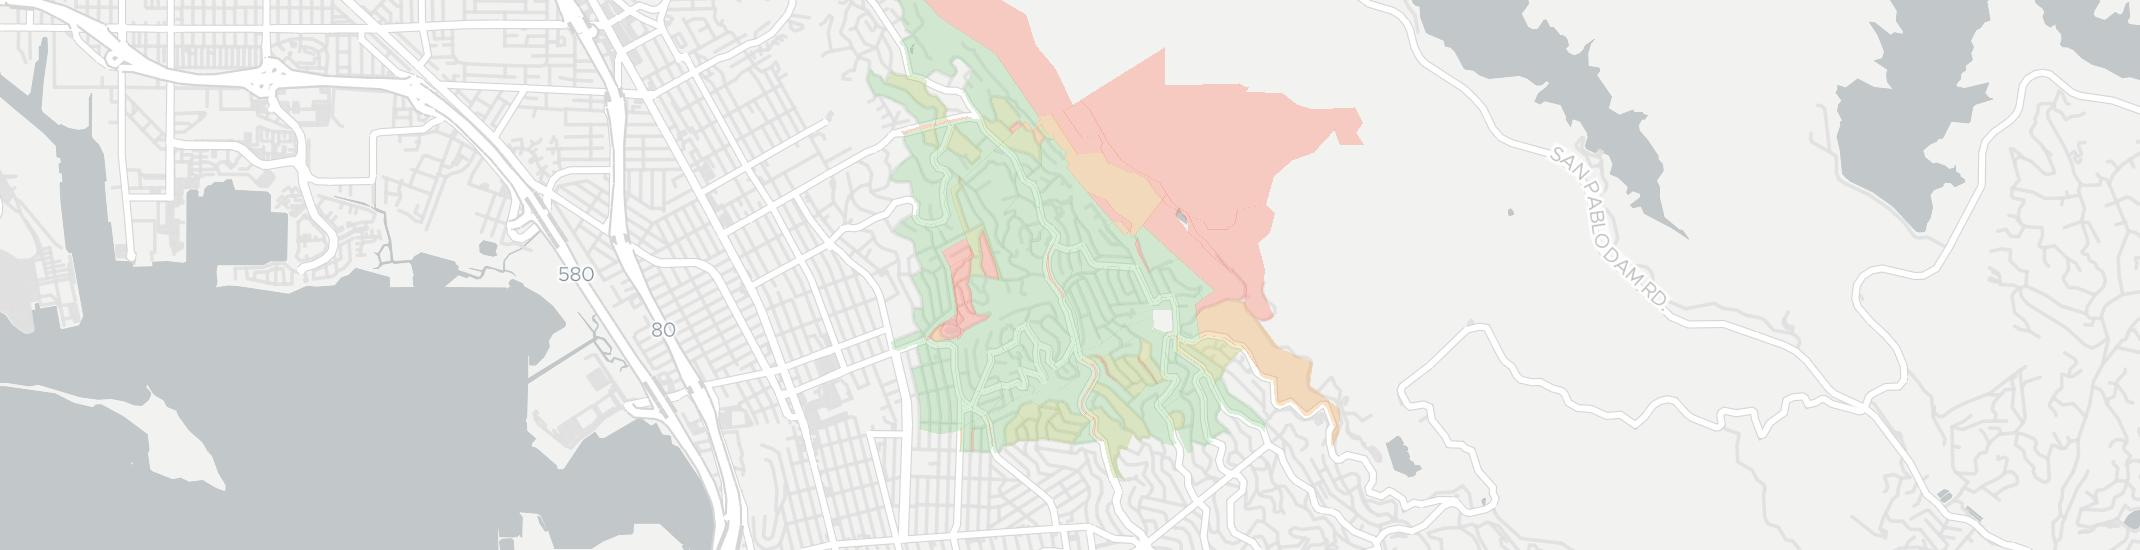 Kensington Internet Competition Map. Click for interactive map.